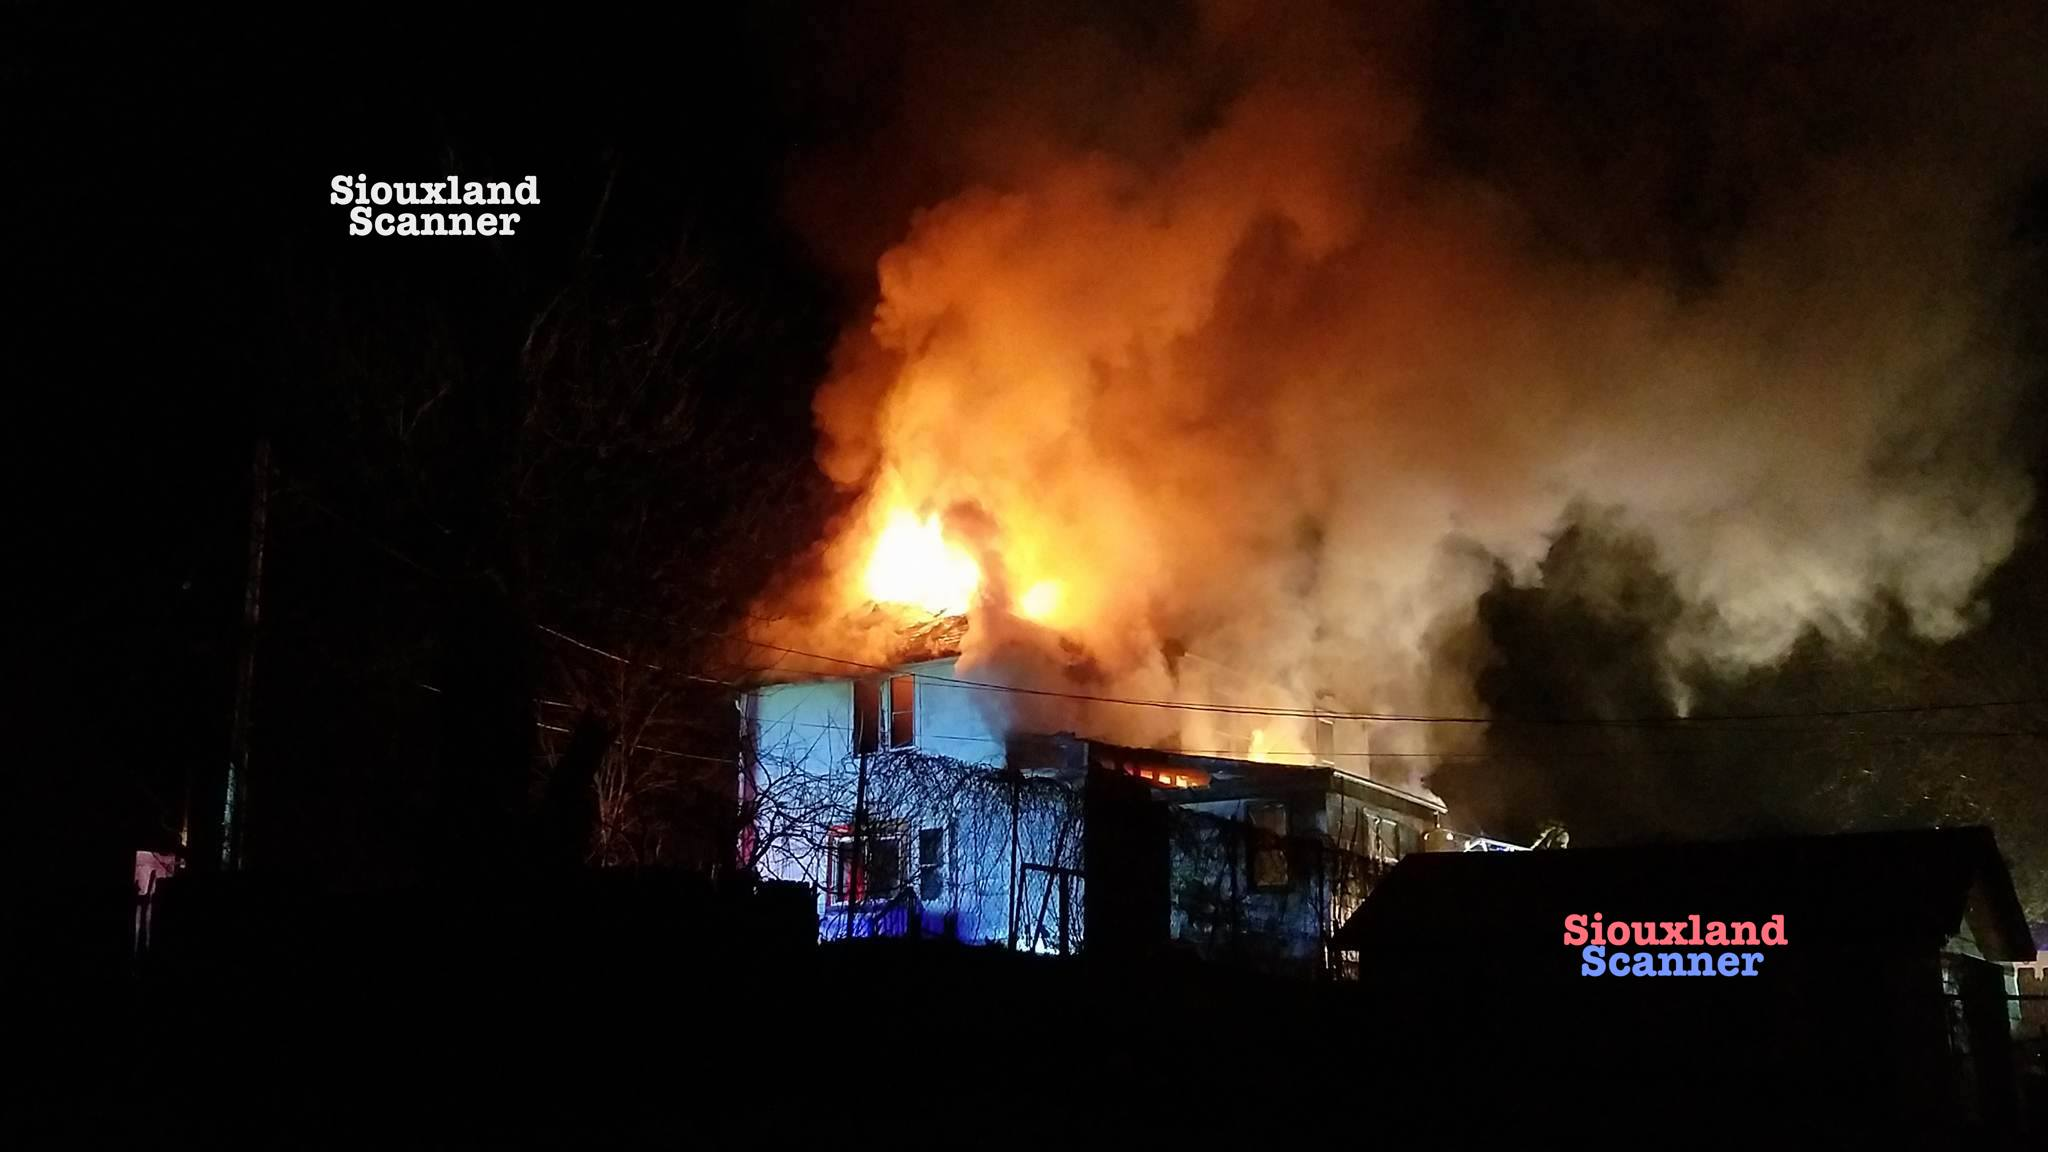 20 foot flames could be seen from burning West Side home Sunday Morning